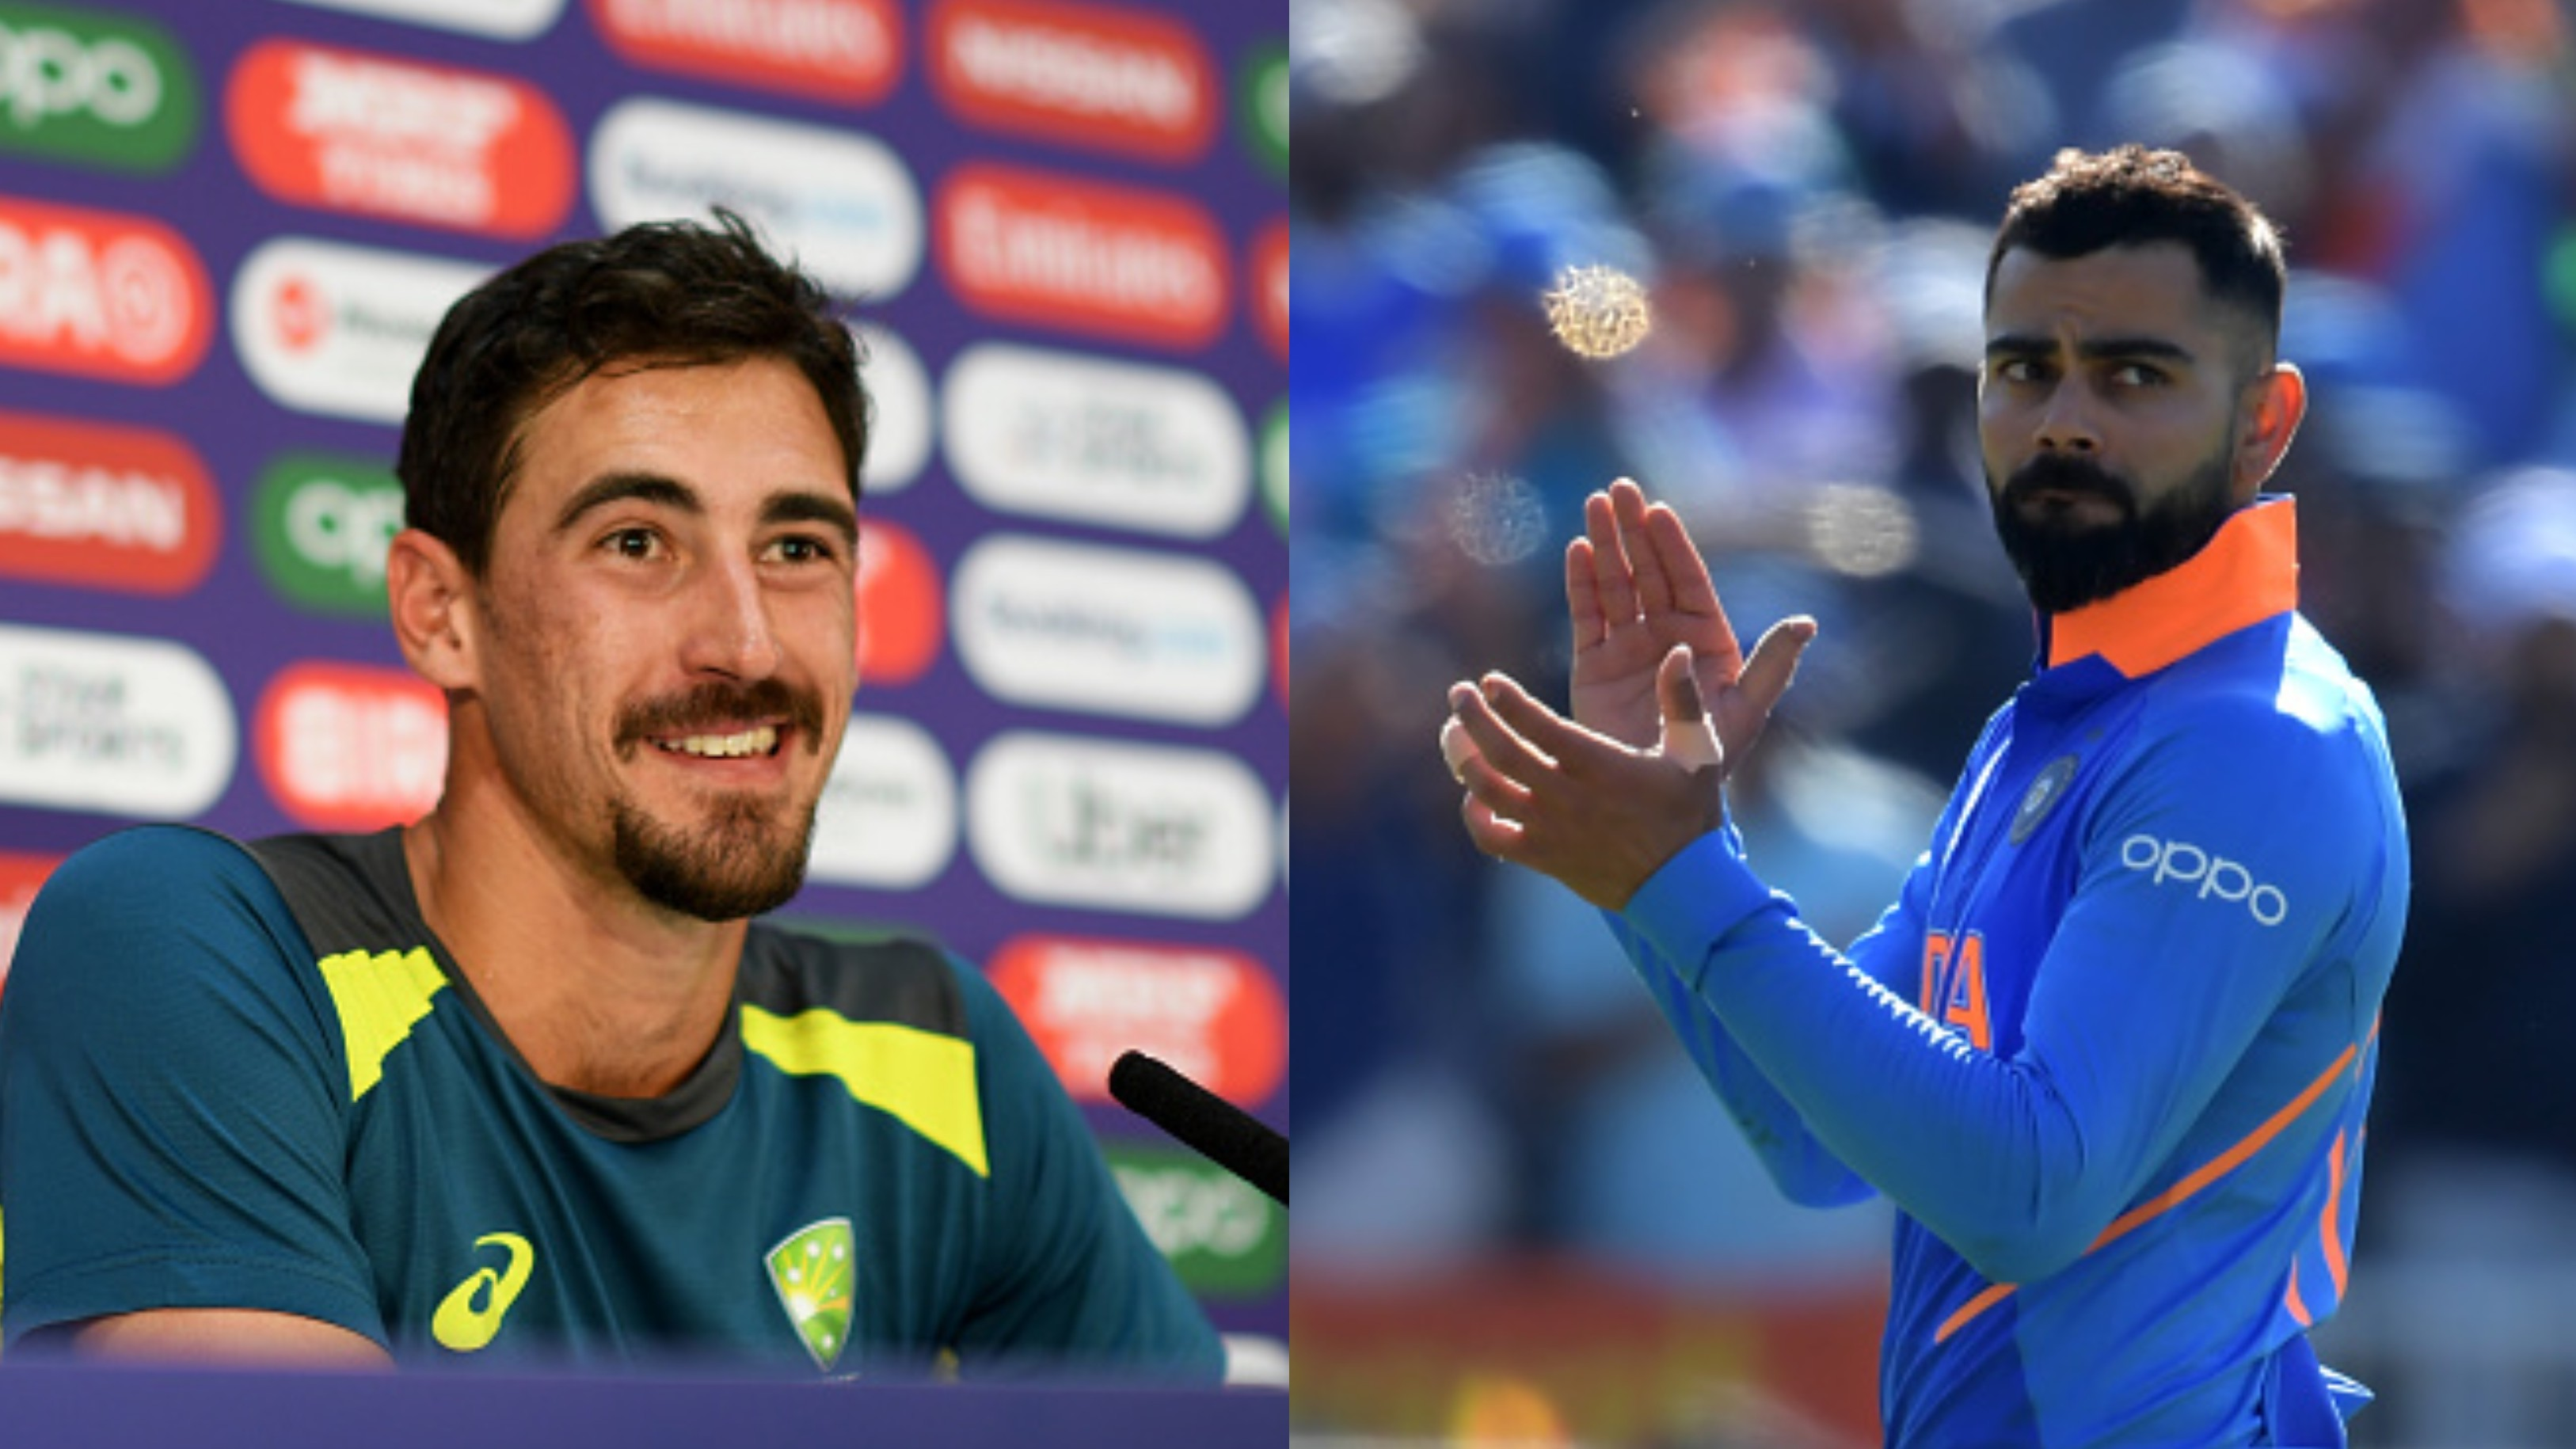 CWC 2019: Mitchell Starc impressed by Virat Kohli's all-round game